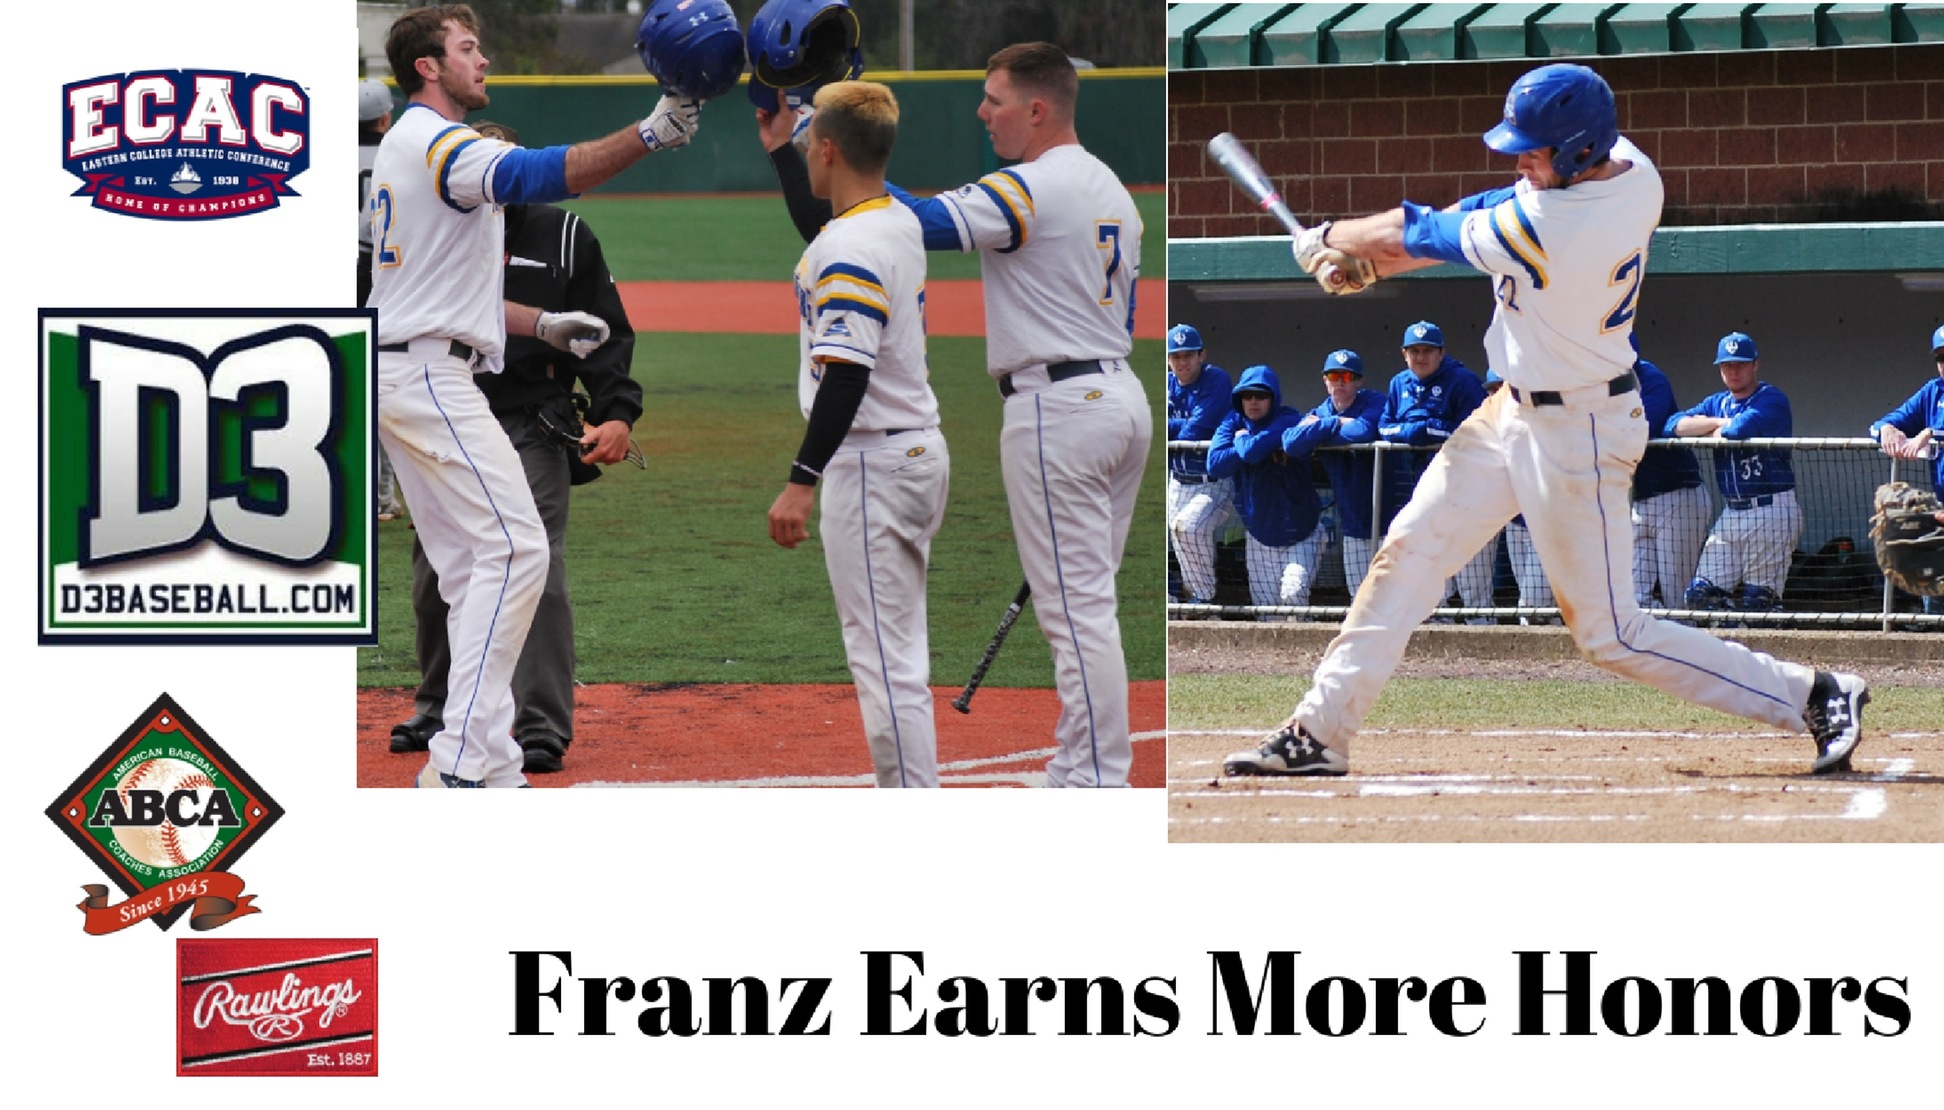 Franz Earns More Honors